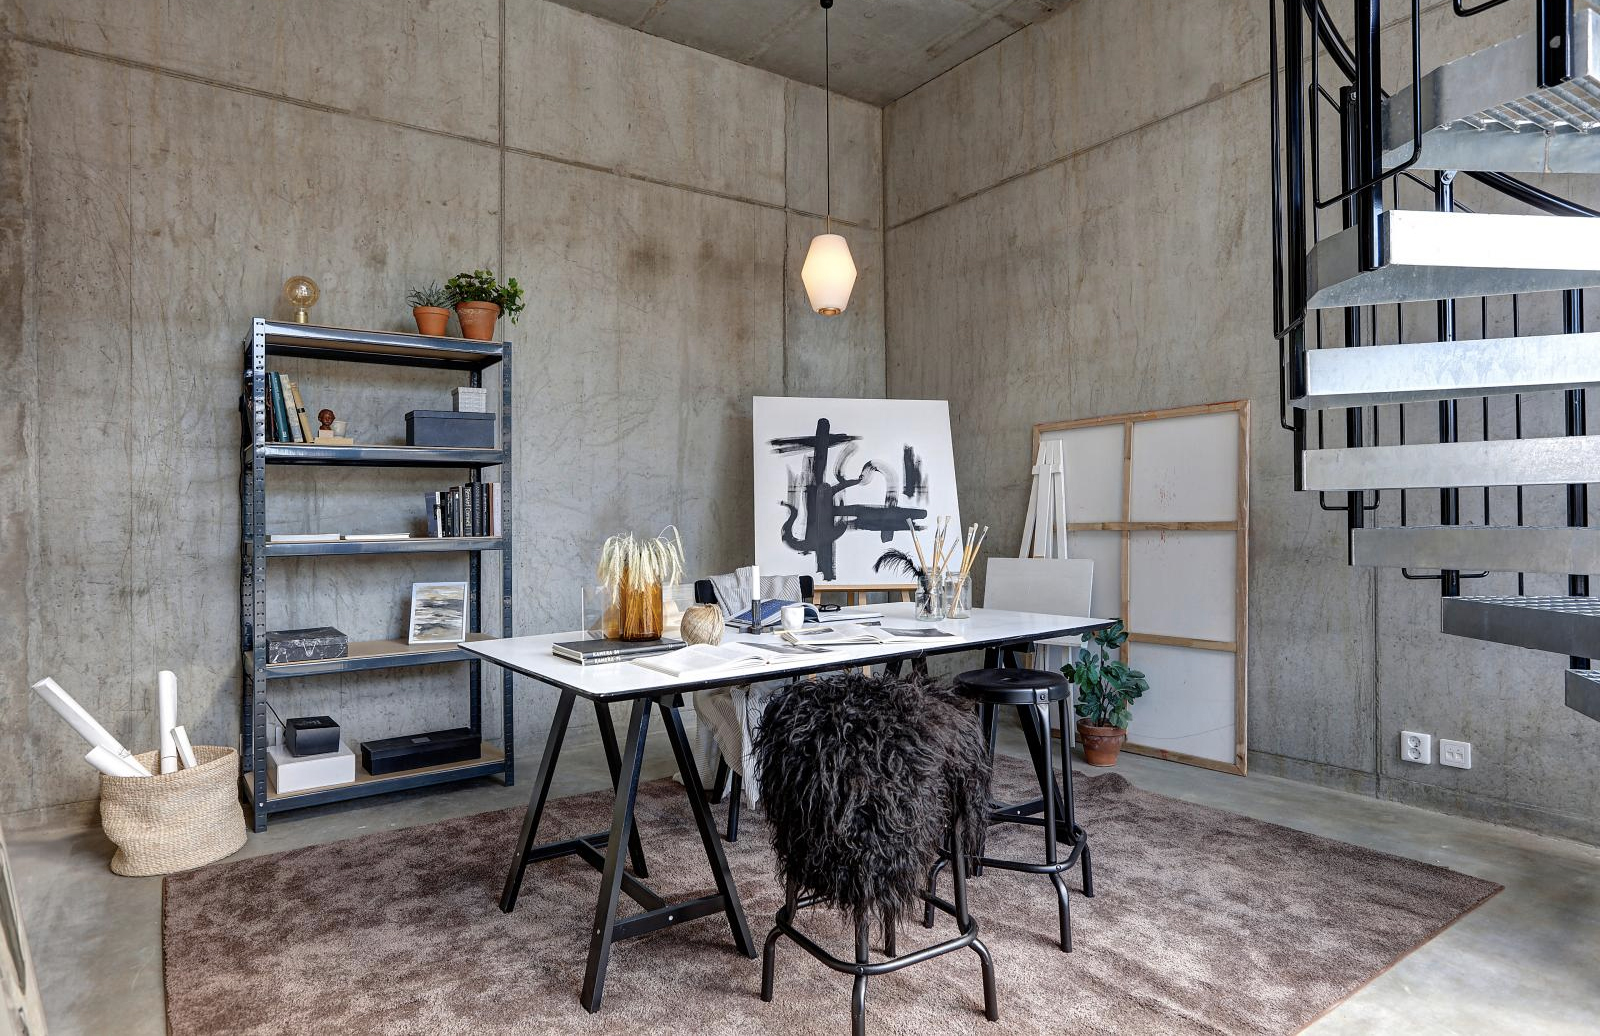 Peek Inside This Industrial Live Work Apartment In Malmo The Spaces